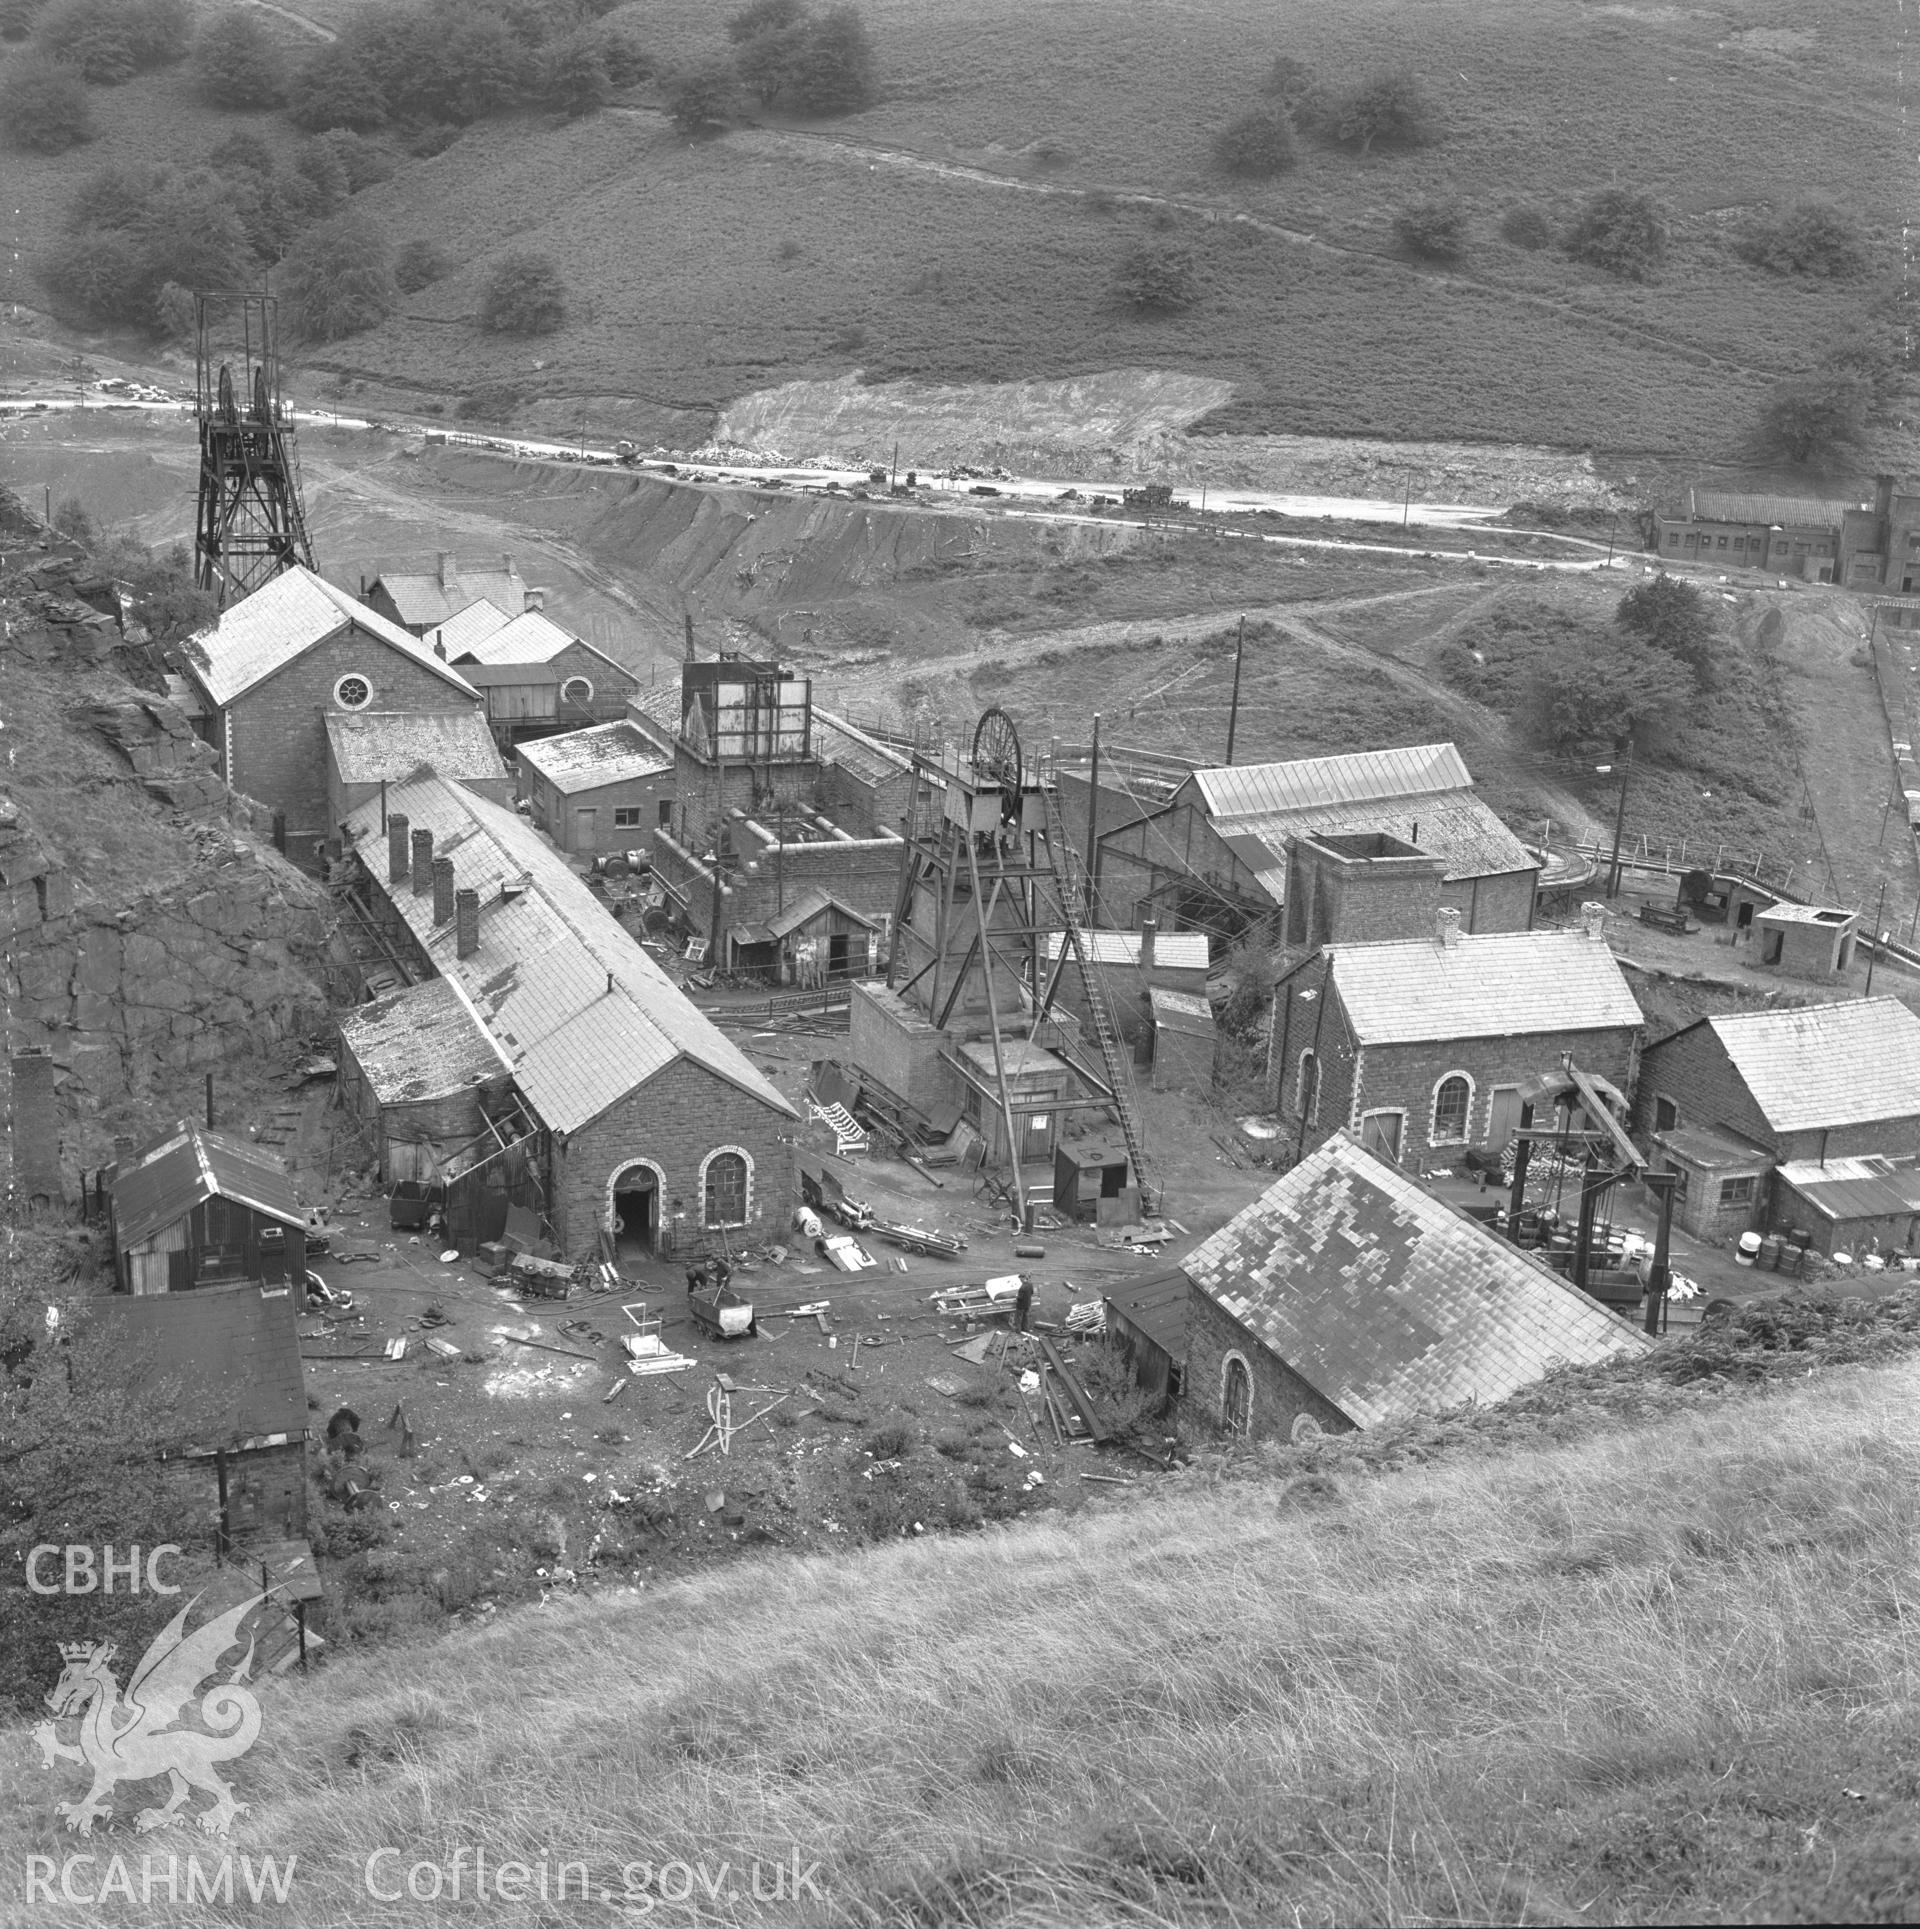 Digital copy of an acetate negative showing general view of Blaenserchan Colliery from above,  from the John Cornwell Collection.